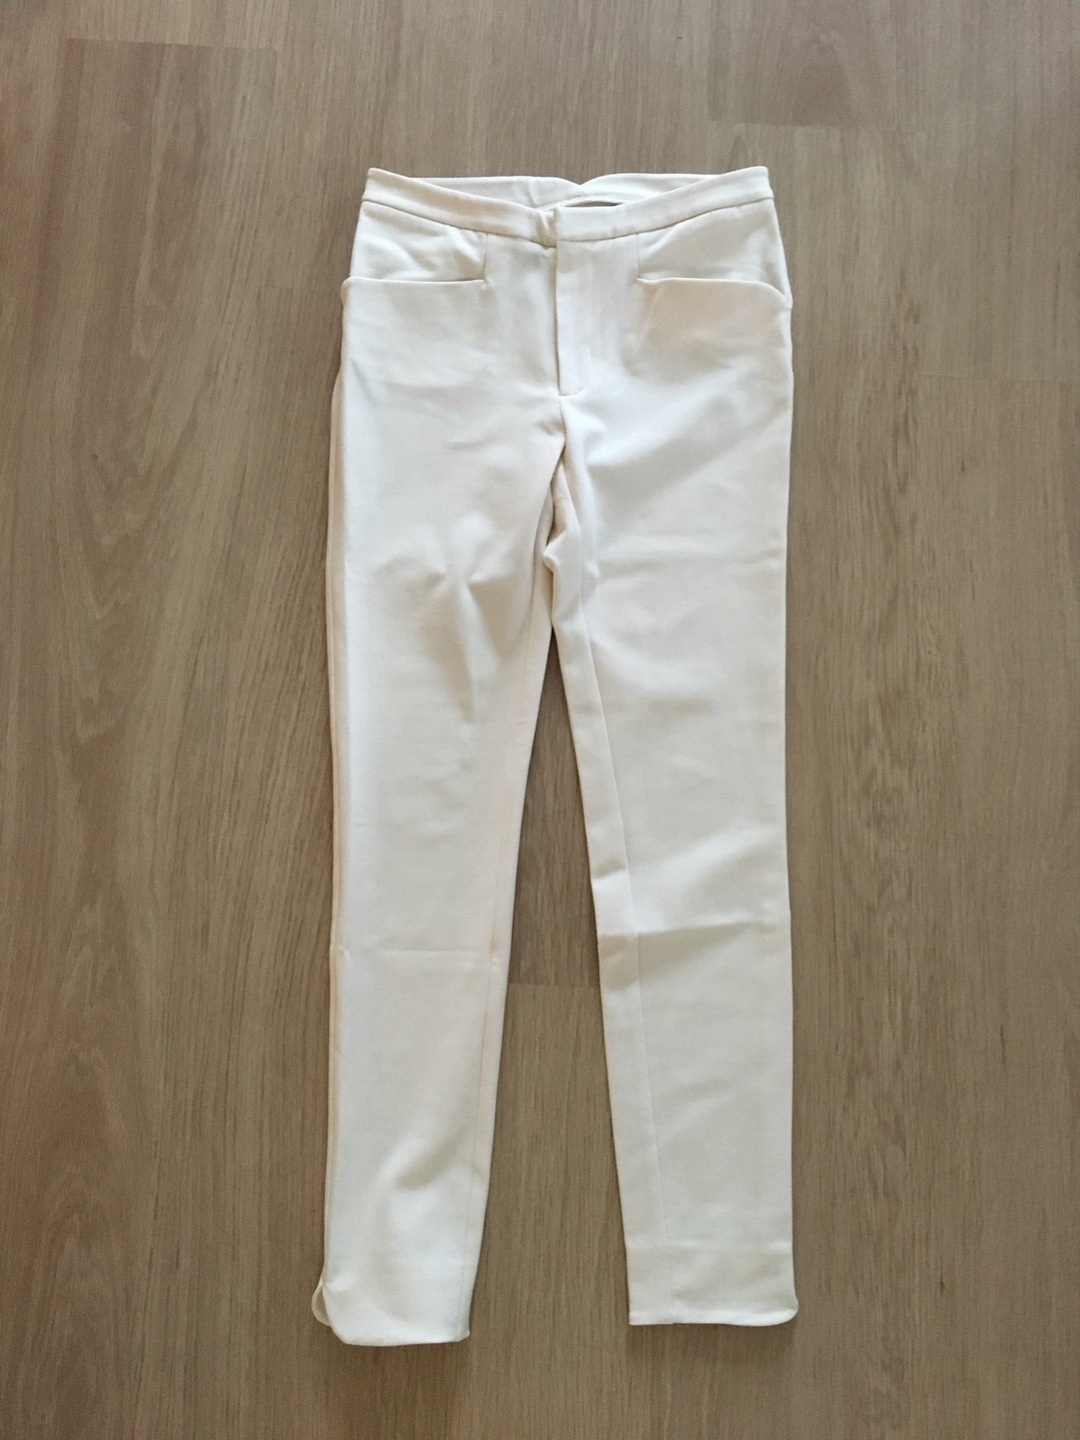 Women's trousers & jeans - TIGER OF SWEDEN photo 2